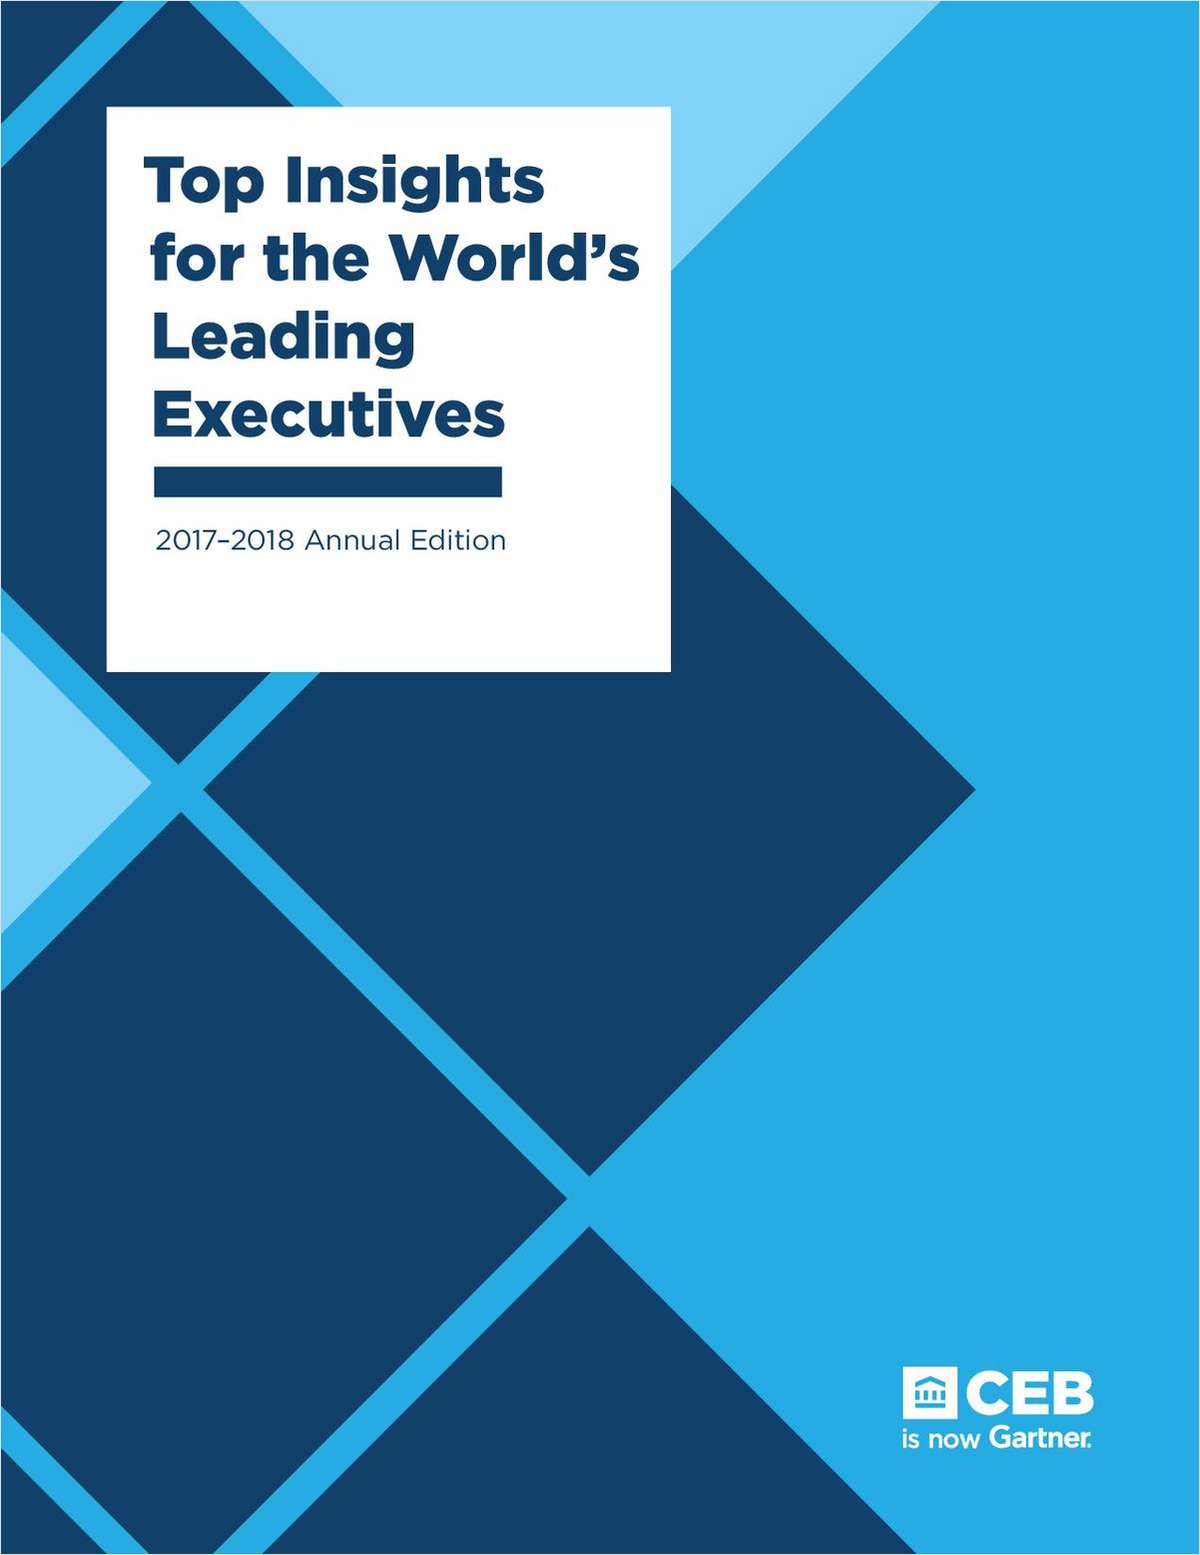 2017-2018 Top Insights for Sales, Marketing and Communications Leaders